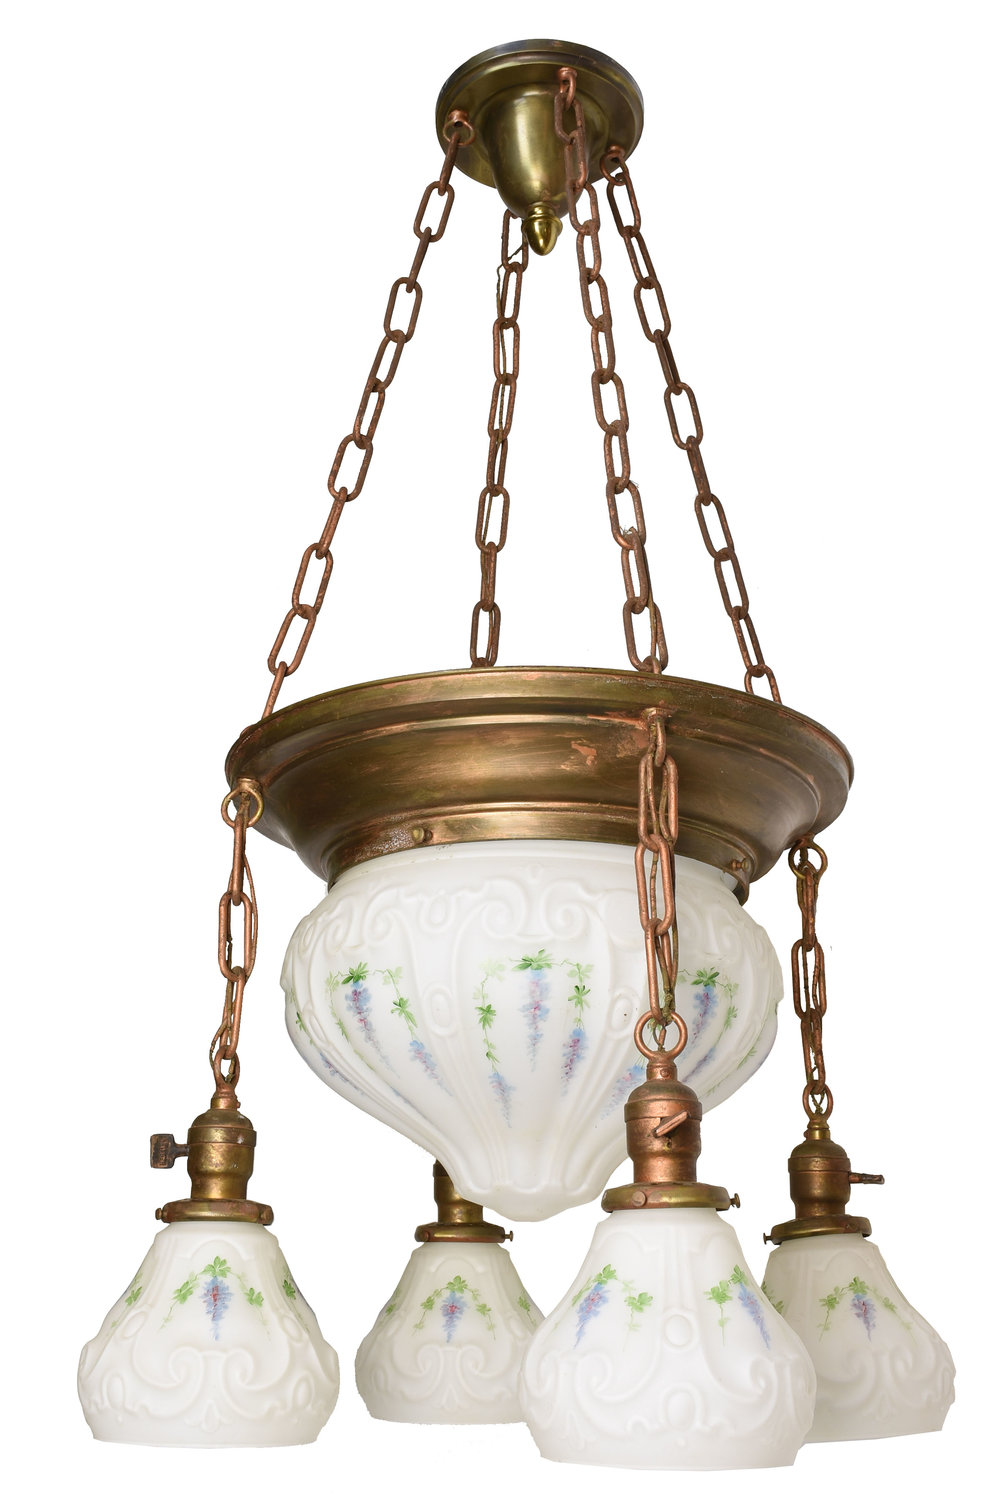 46639-bowl-with-4-shades-chandelier-full.jpg